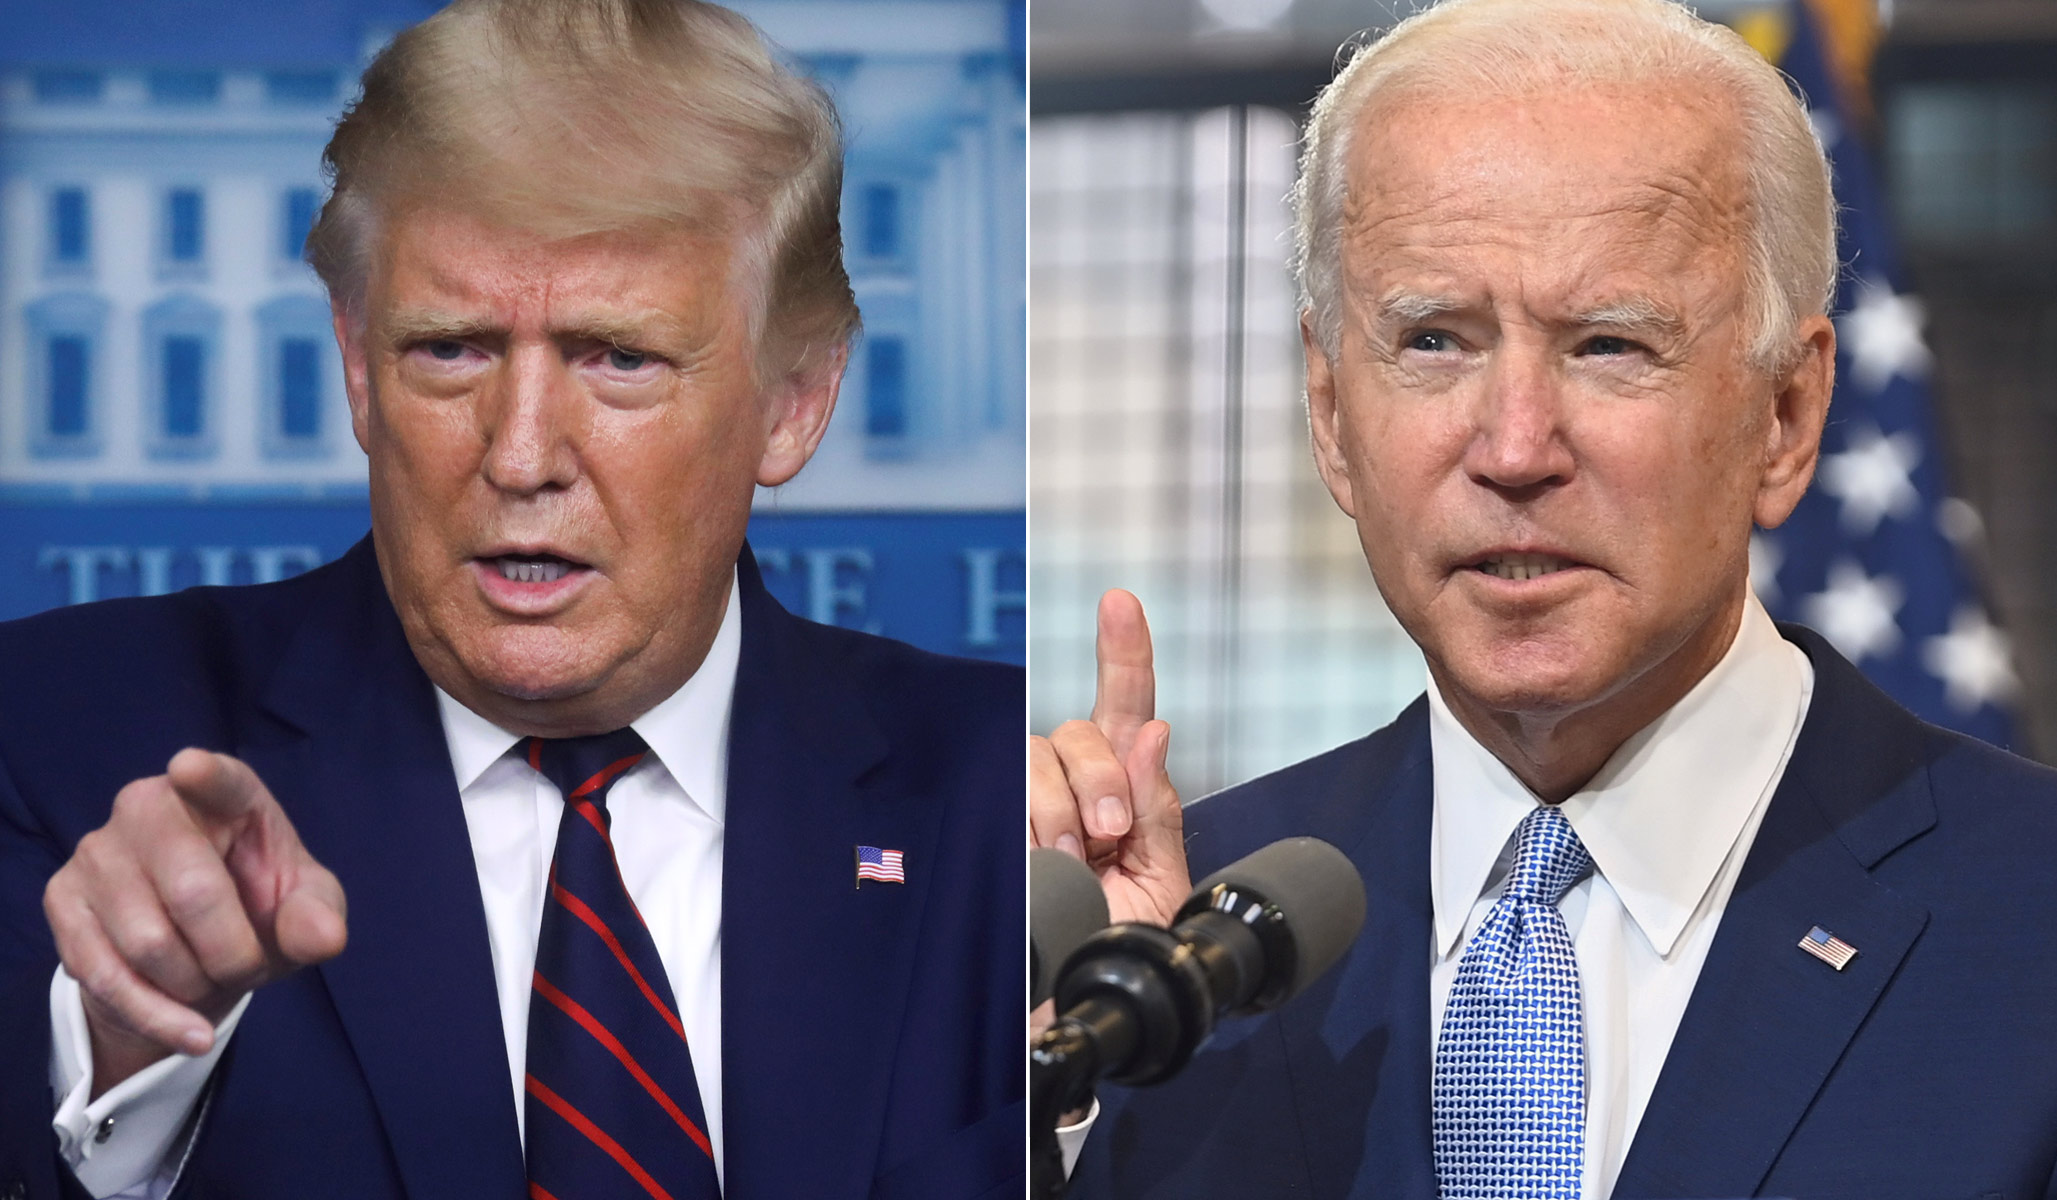 Donald Trump vs. Joe Biden: Foreign Policy, Domestic Policy, Character & Transparency | National Review